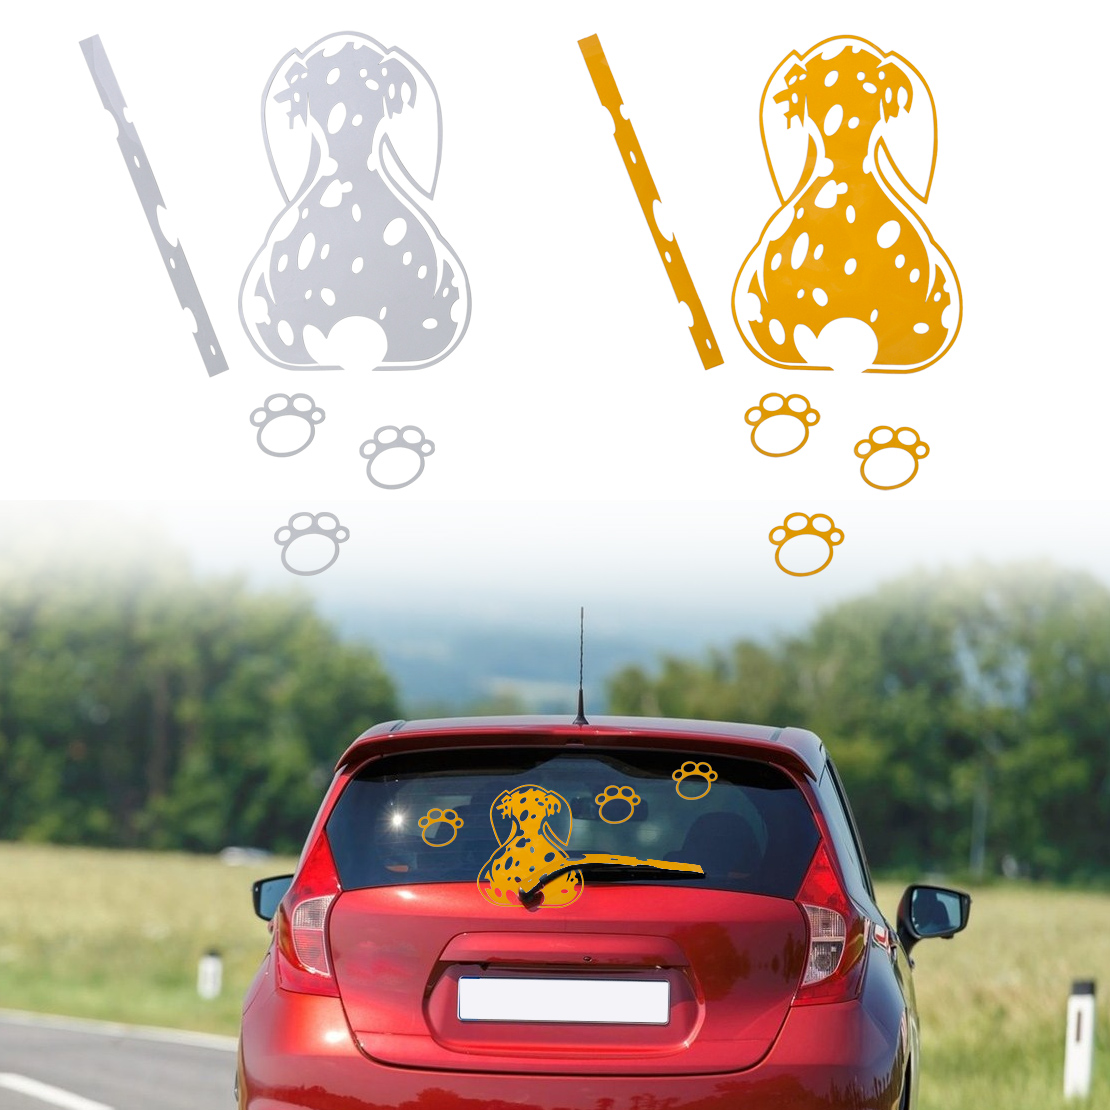 Details about funny wagging tail pet dog car sticker decals for car windshield window wiper